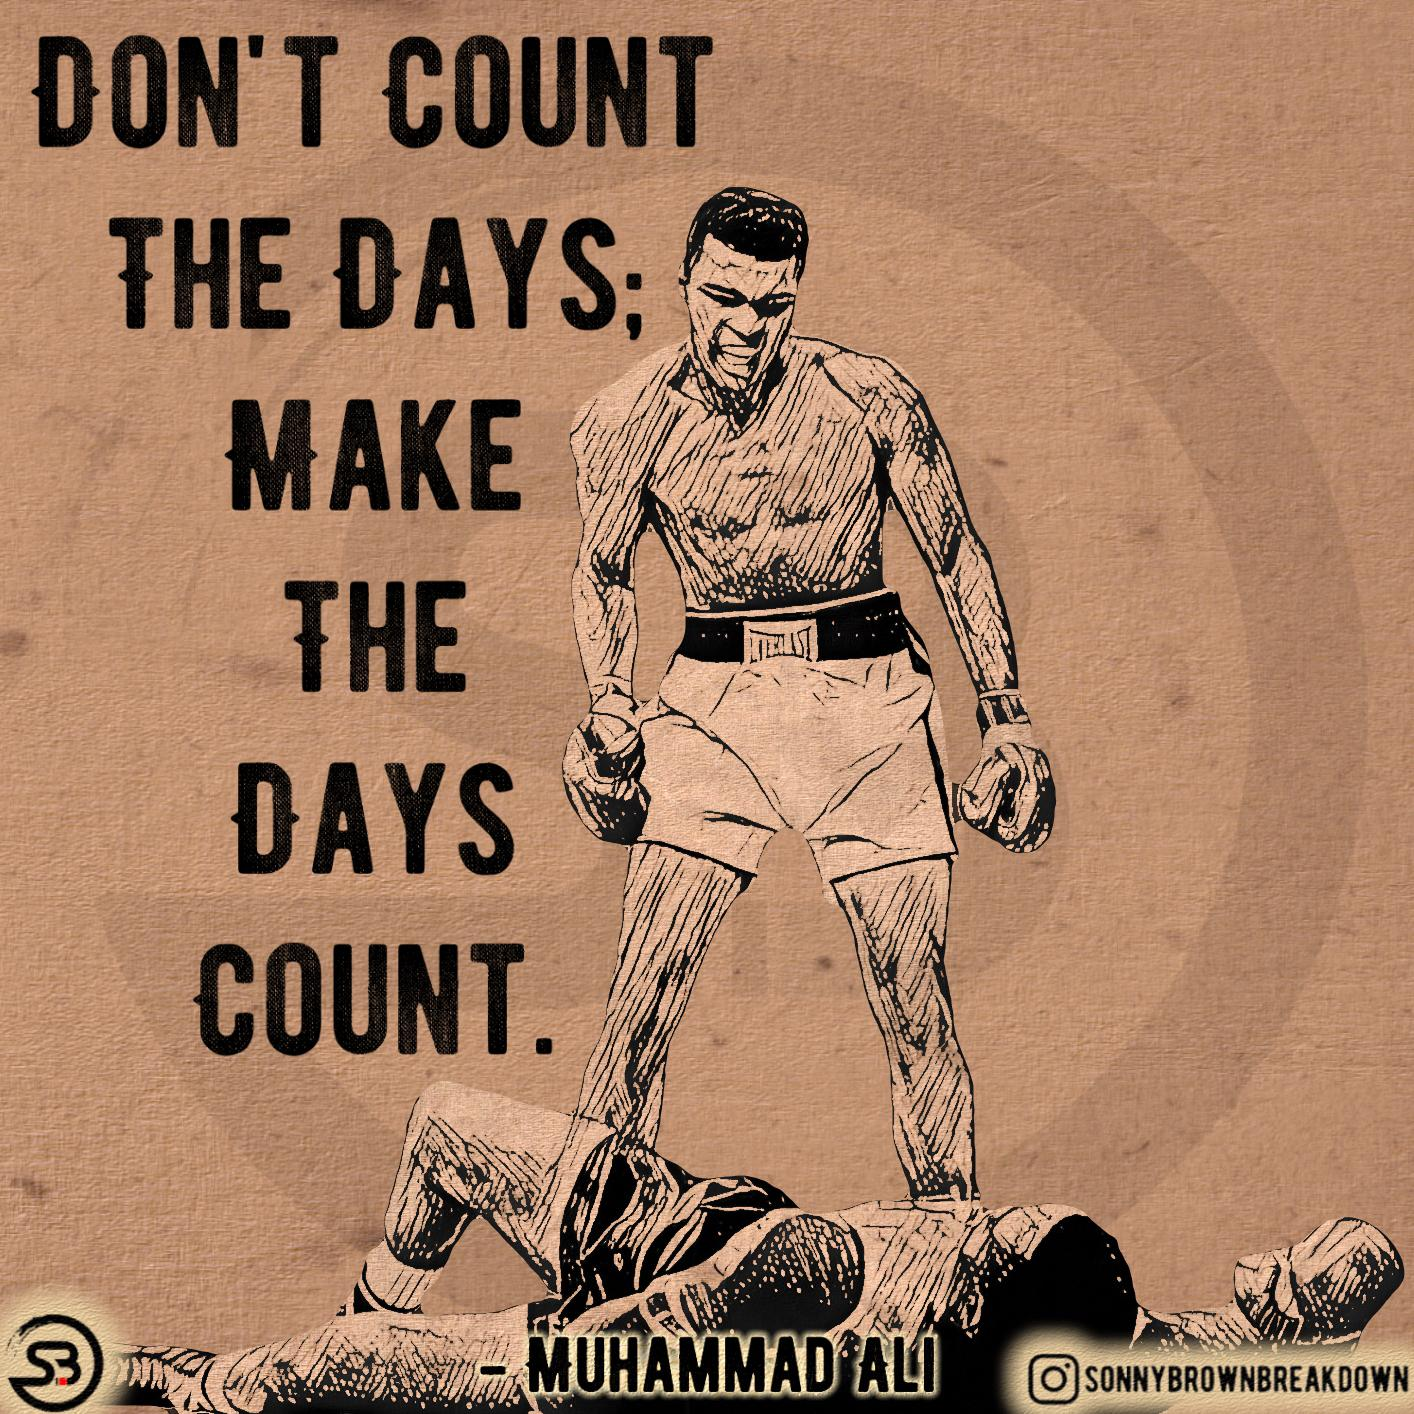 [Image] Don't Count The Days; Make The Days Count.